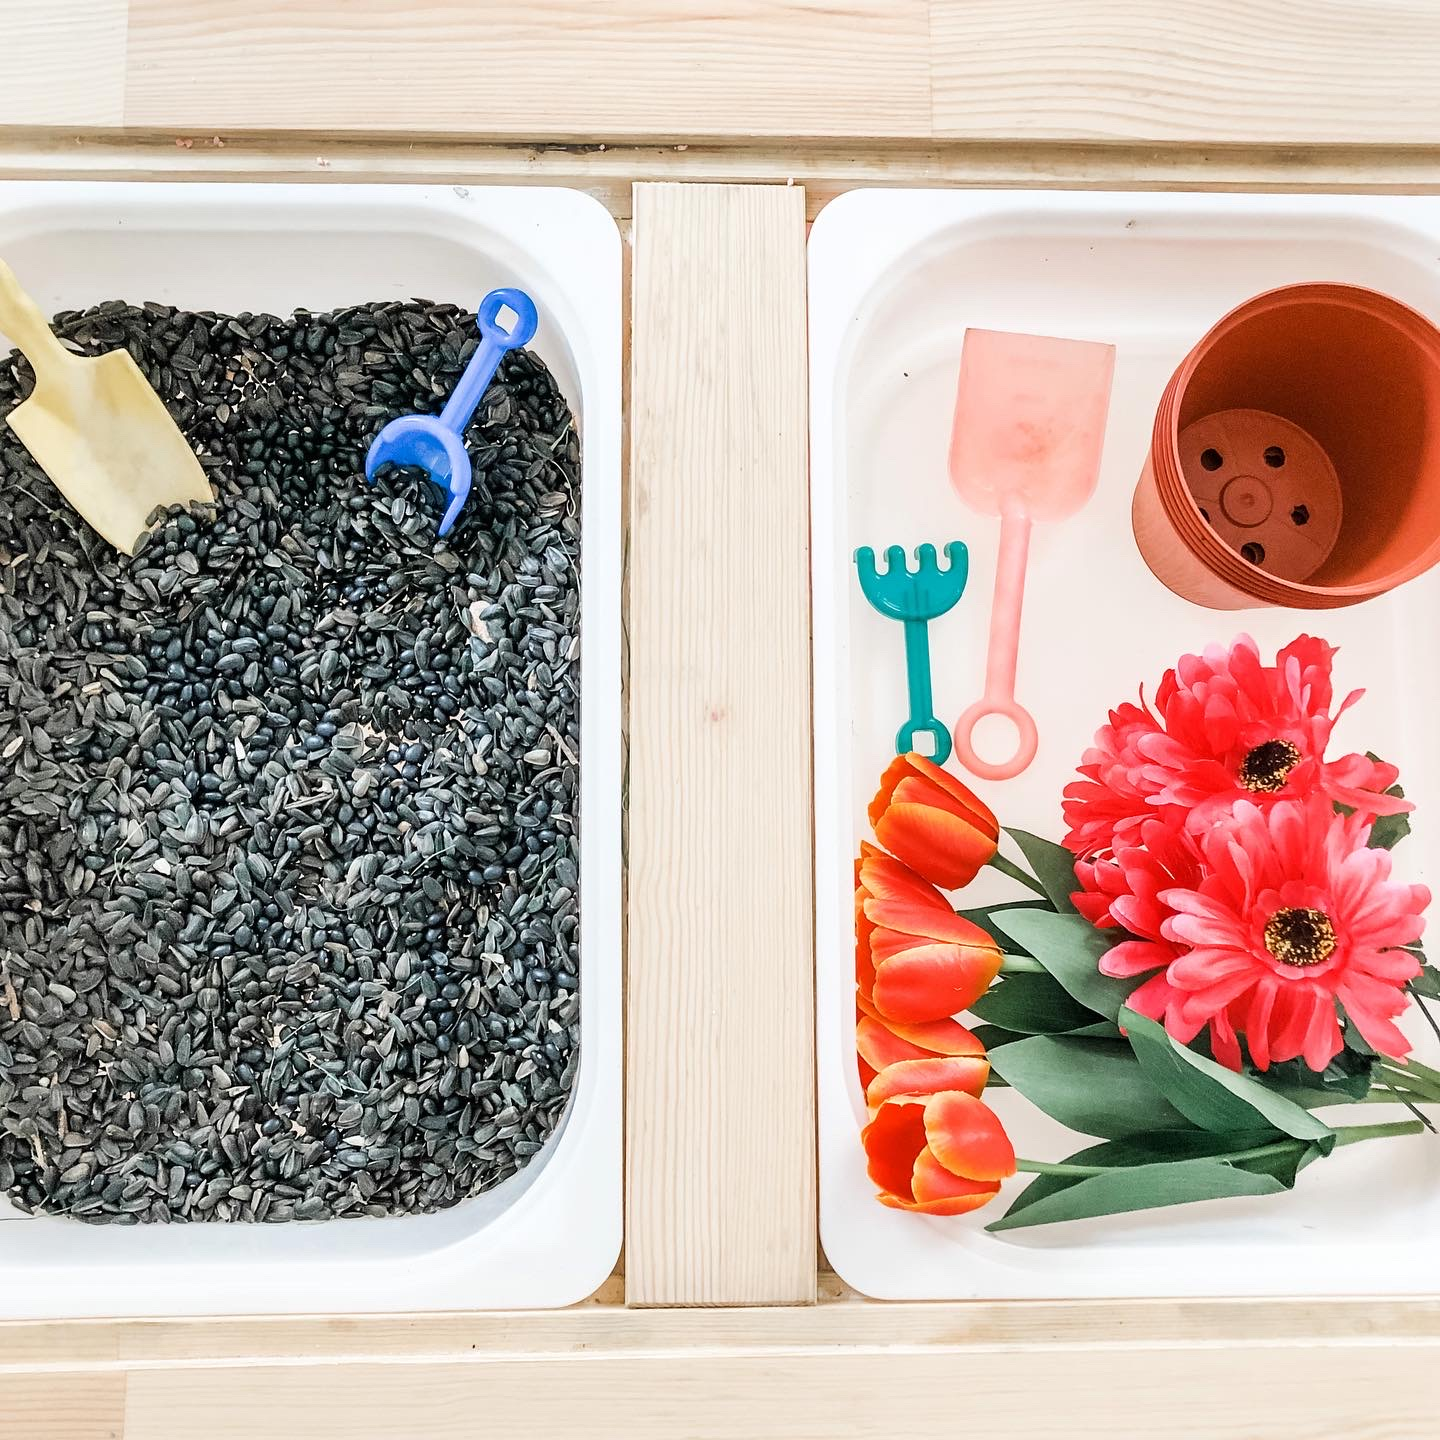 18 MORE Ways to Play with Your Ikea Flisat Table